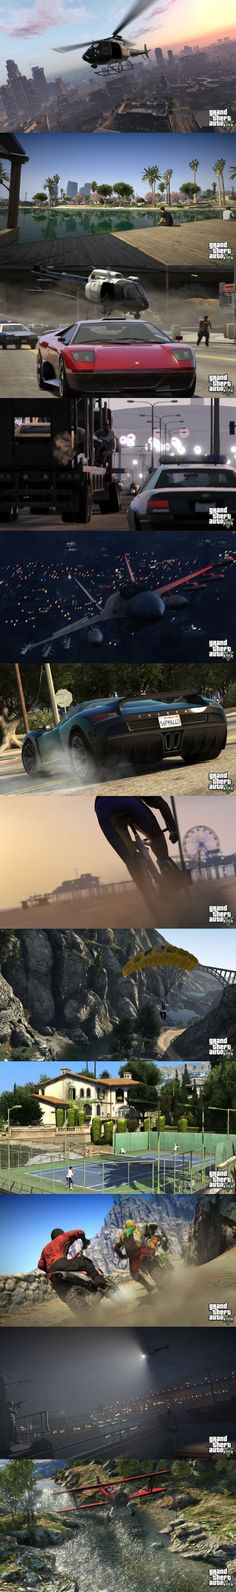 #gta5 online crew funny moments http://www.pinterest.com/internetspammer/gta-v/